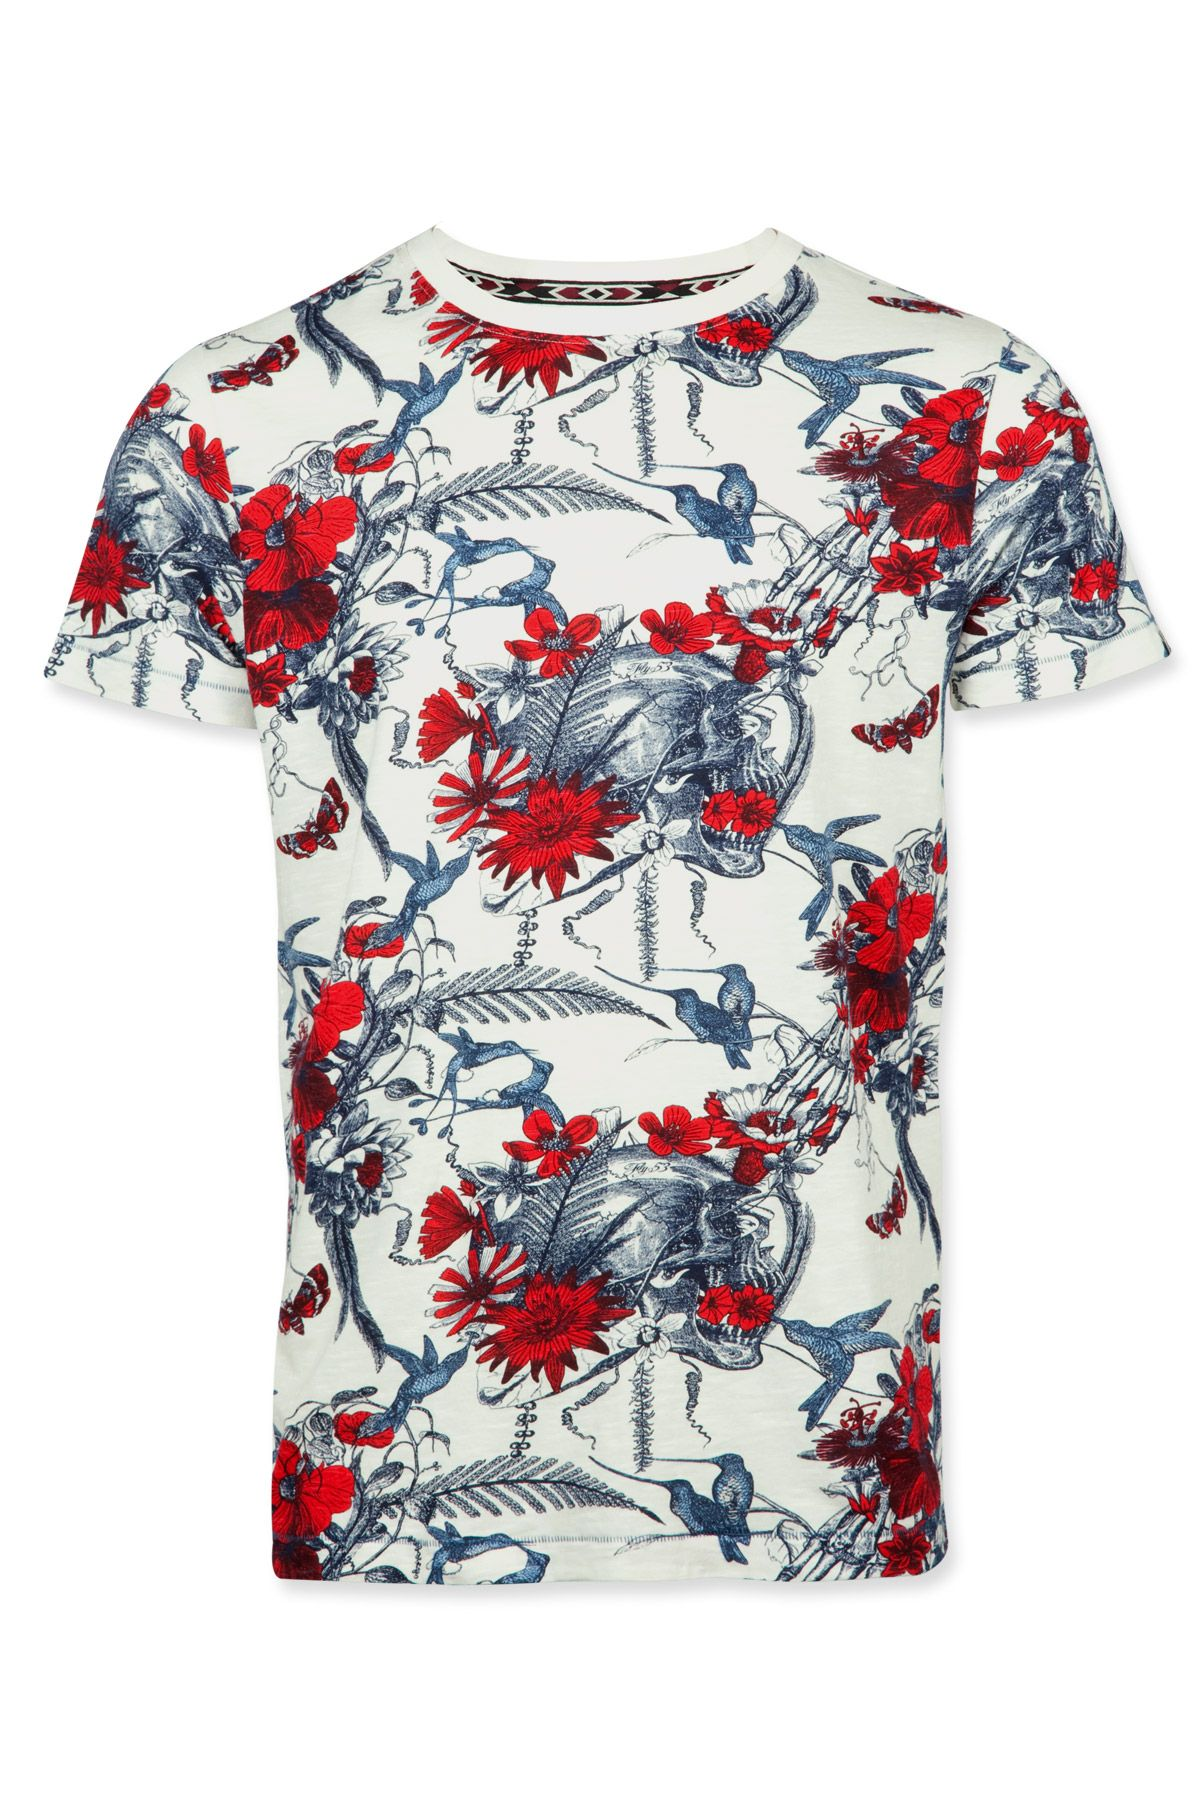 246488c6f43be9 FLY53 T Shirt featuring all over printed floral design. 100% Cotton ...